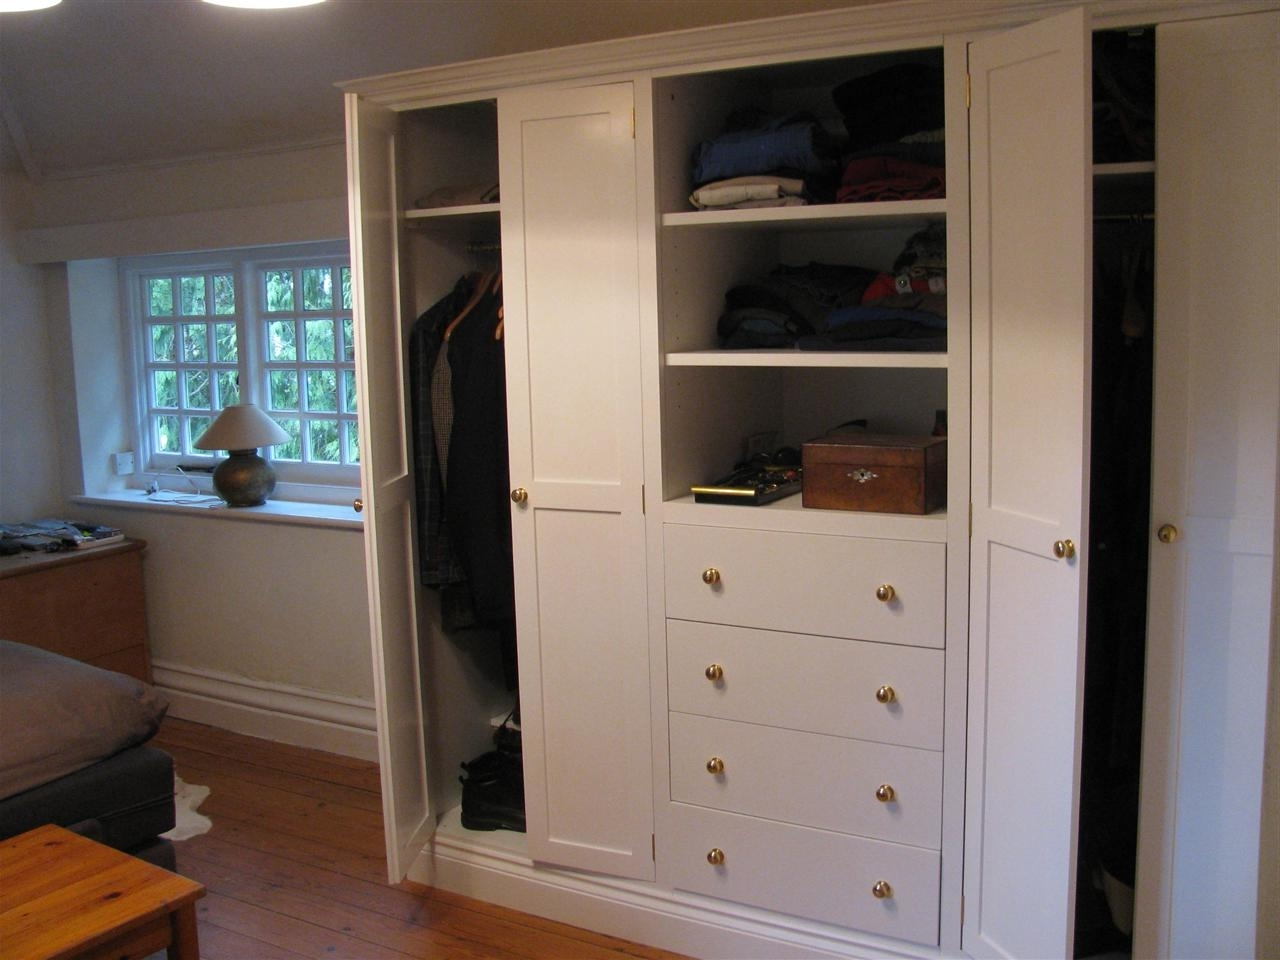 2017 Wardrobe Cabinet With Shelves Drawers And One Door Single With Regard To Wardrobe With Drawers And Shelves (View 1 of 15)